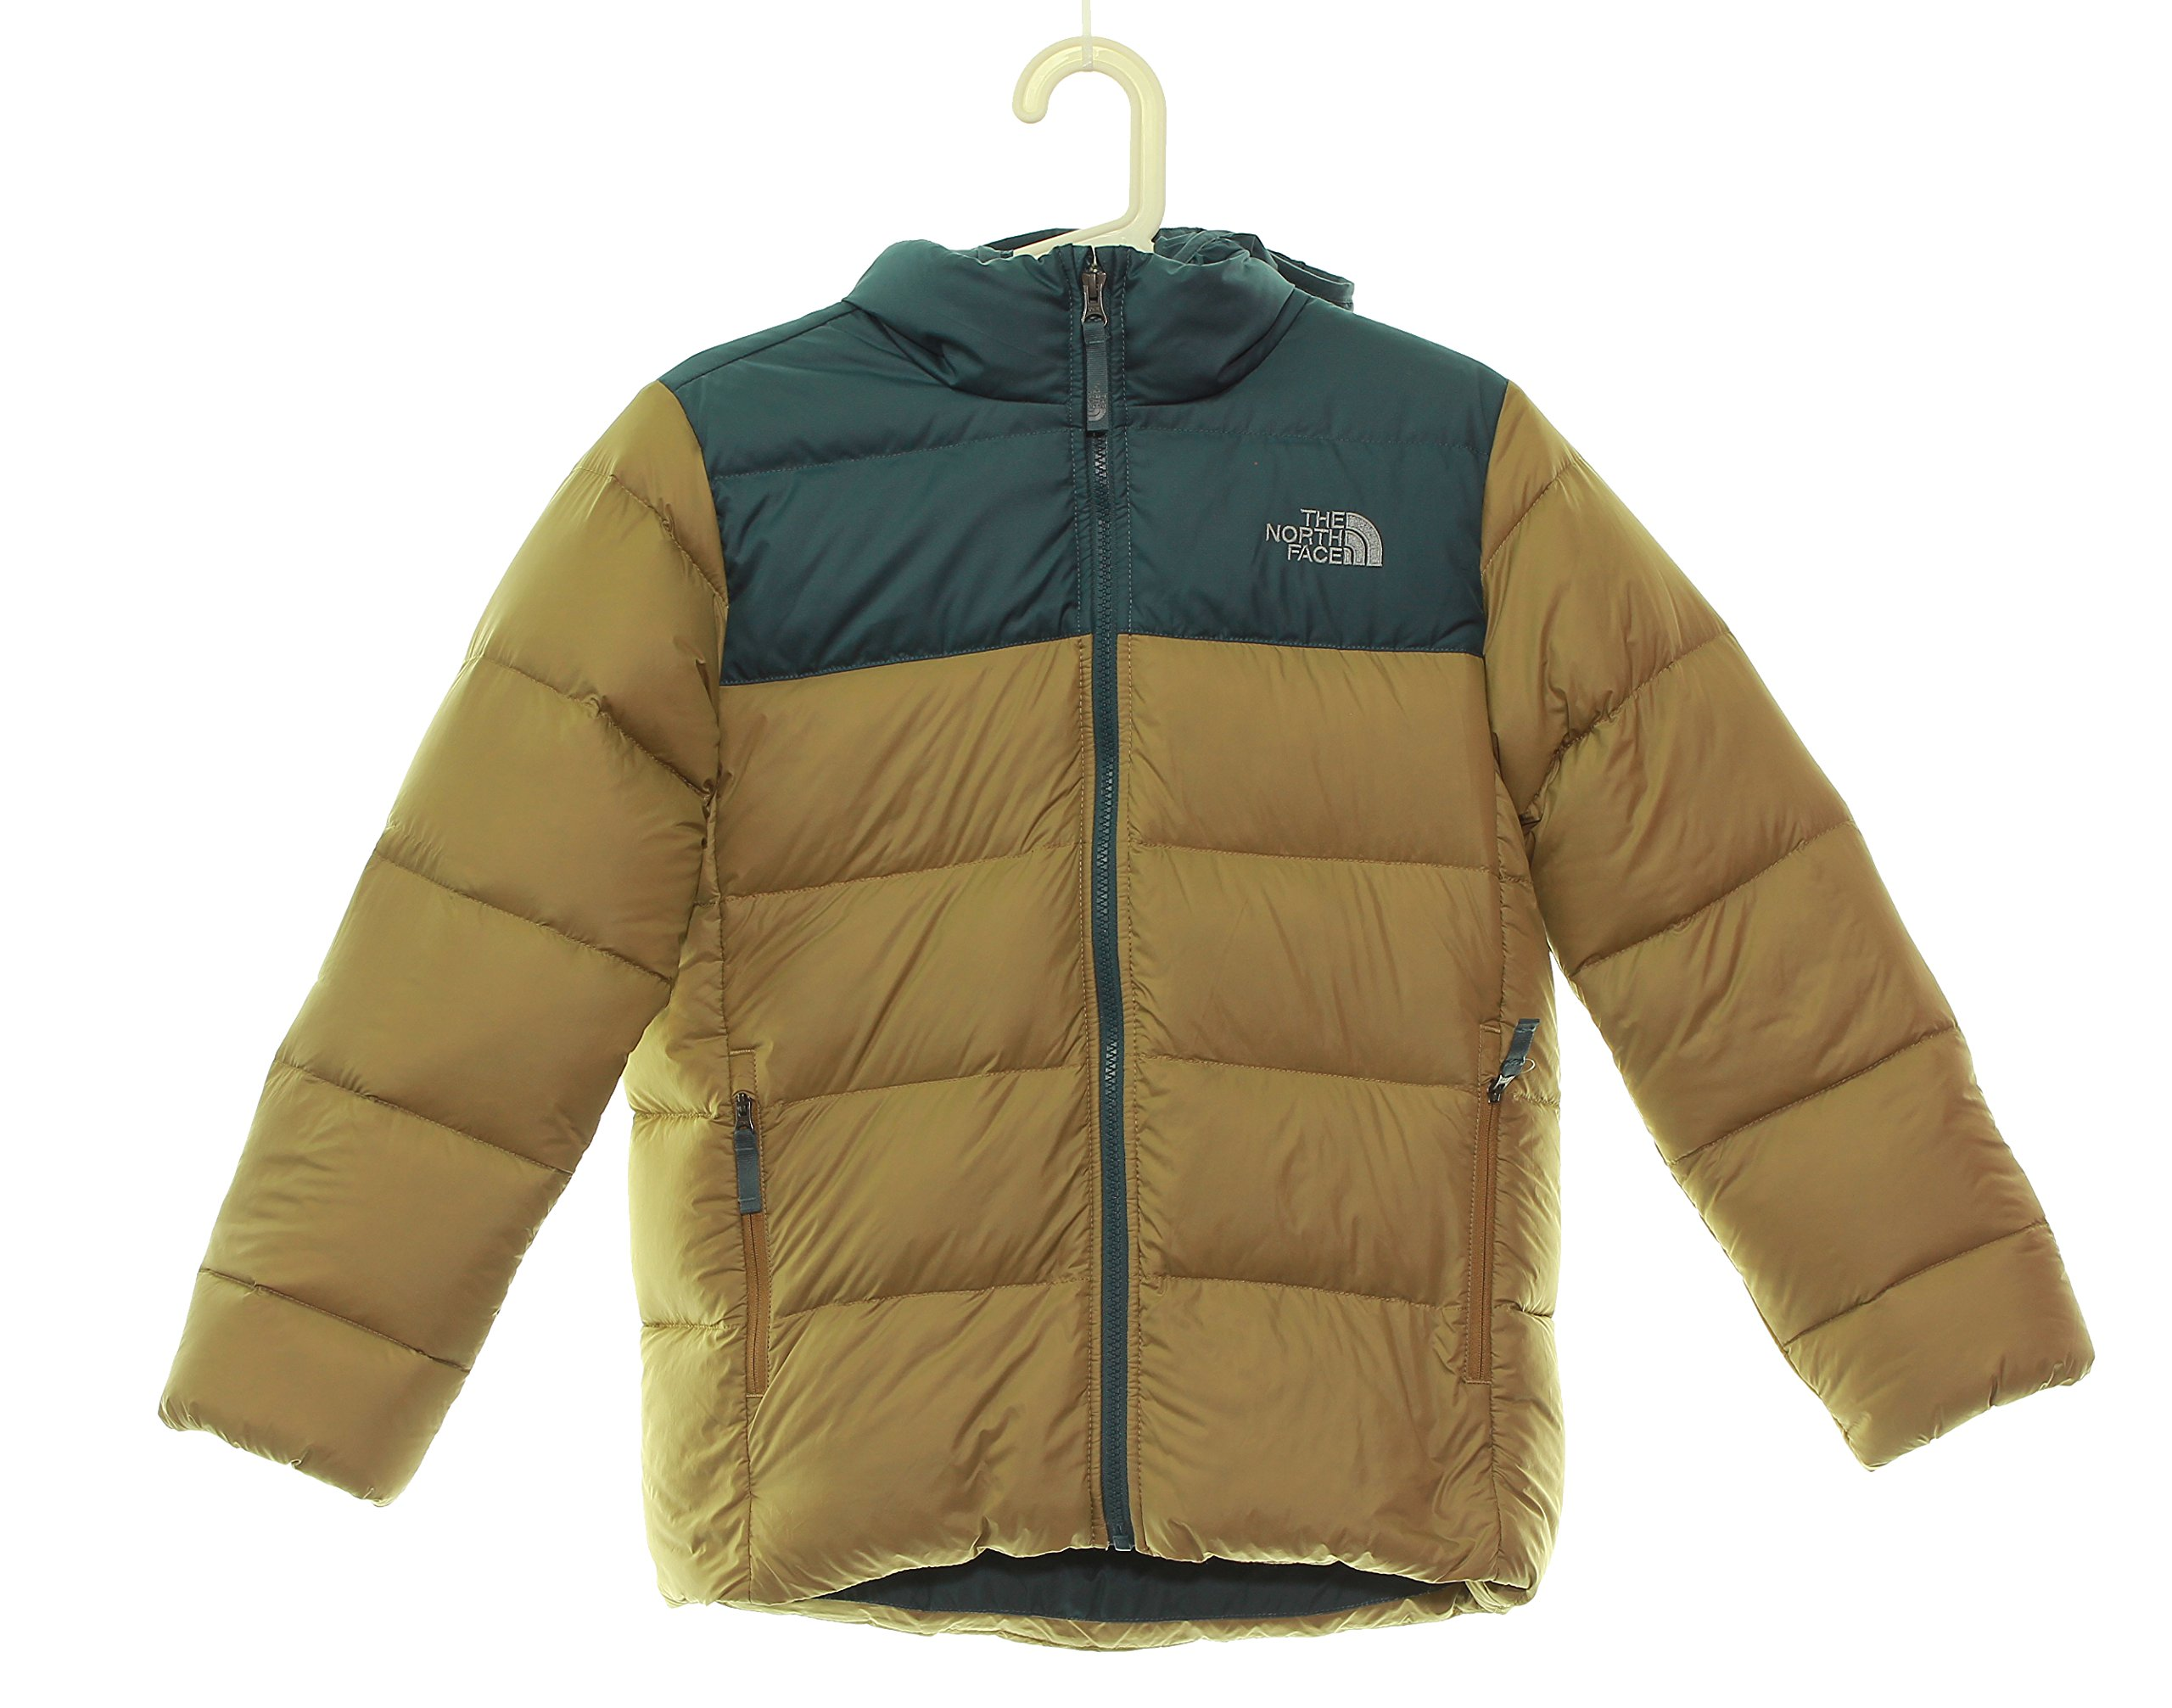 Boy's The North Face Double Down Hoodie Jacket 10/12 Medium Khaki by No Warranty The North Face